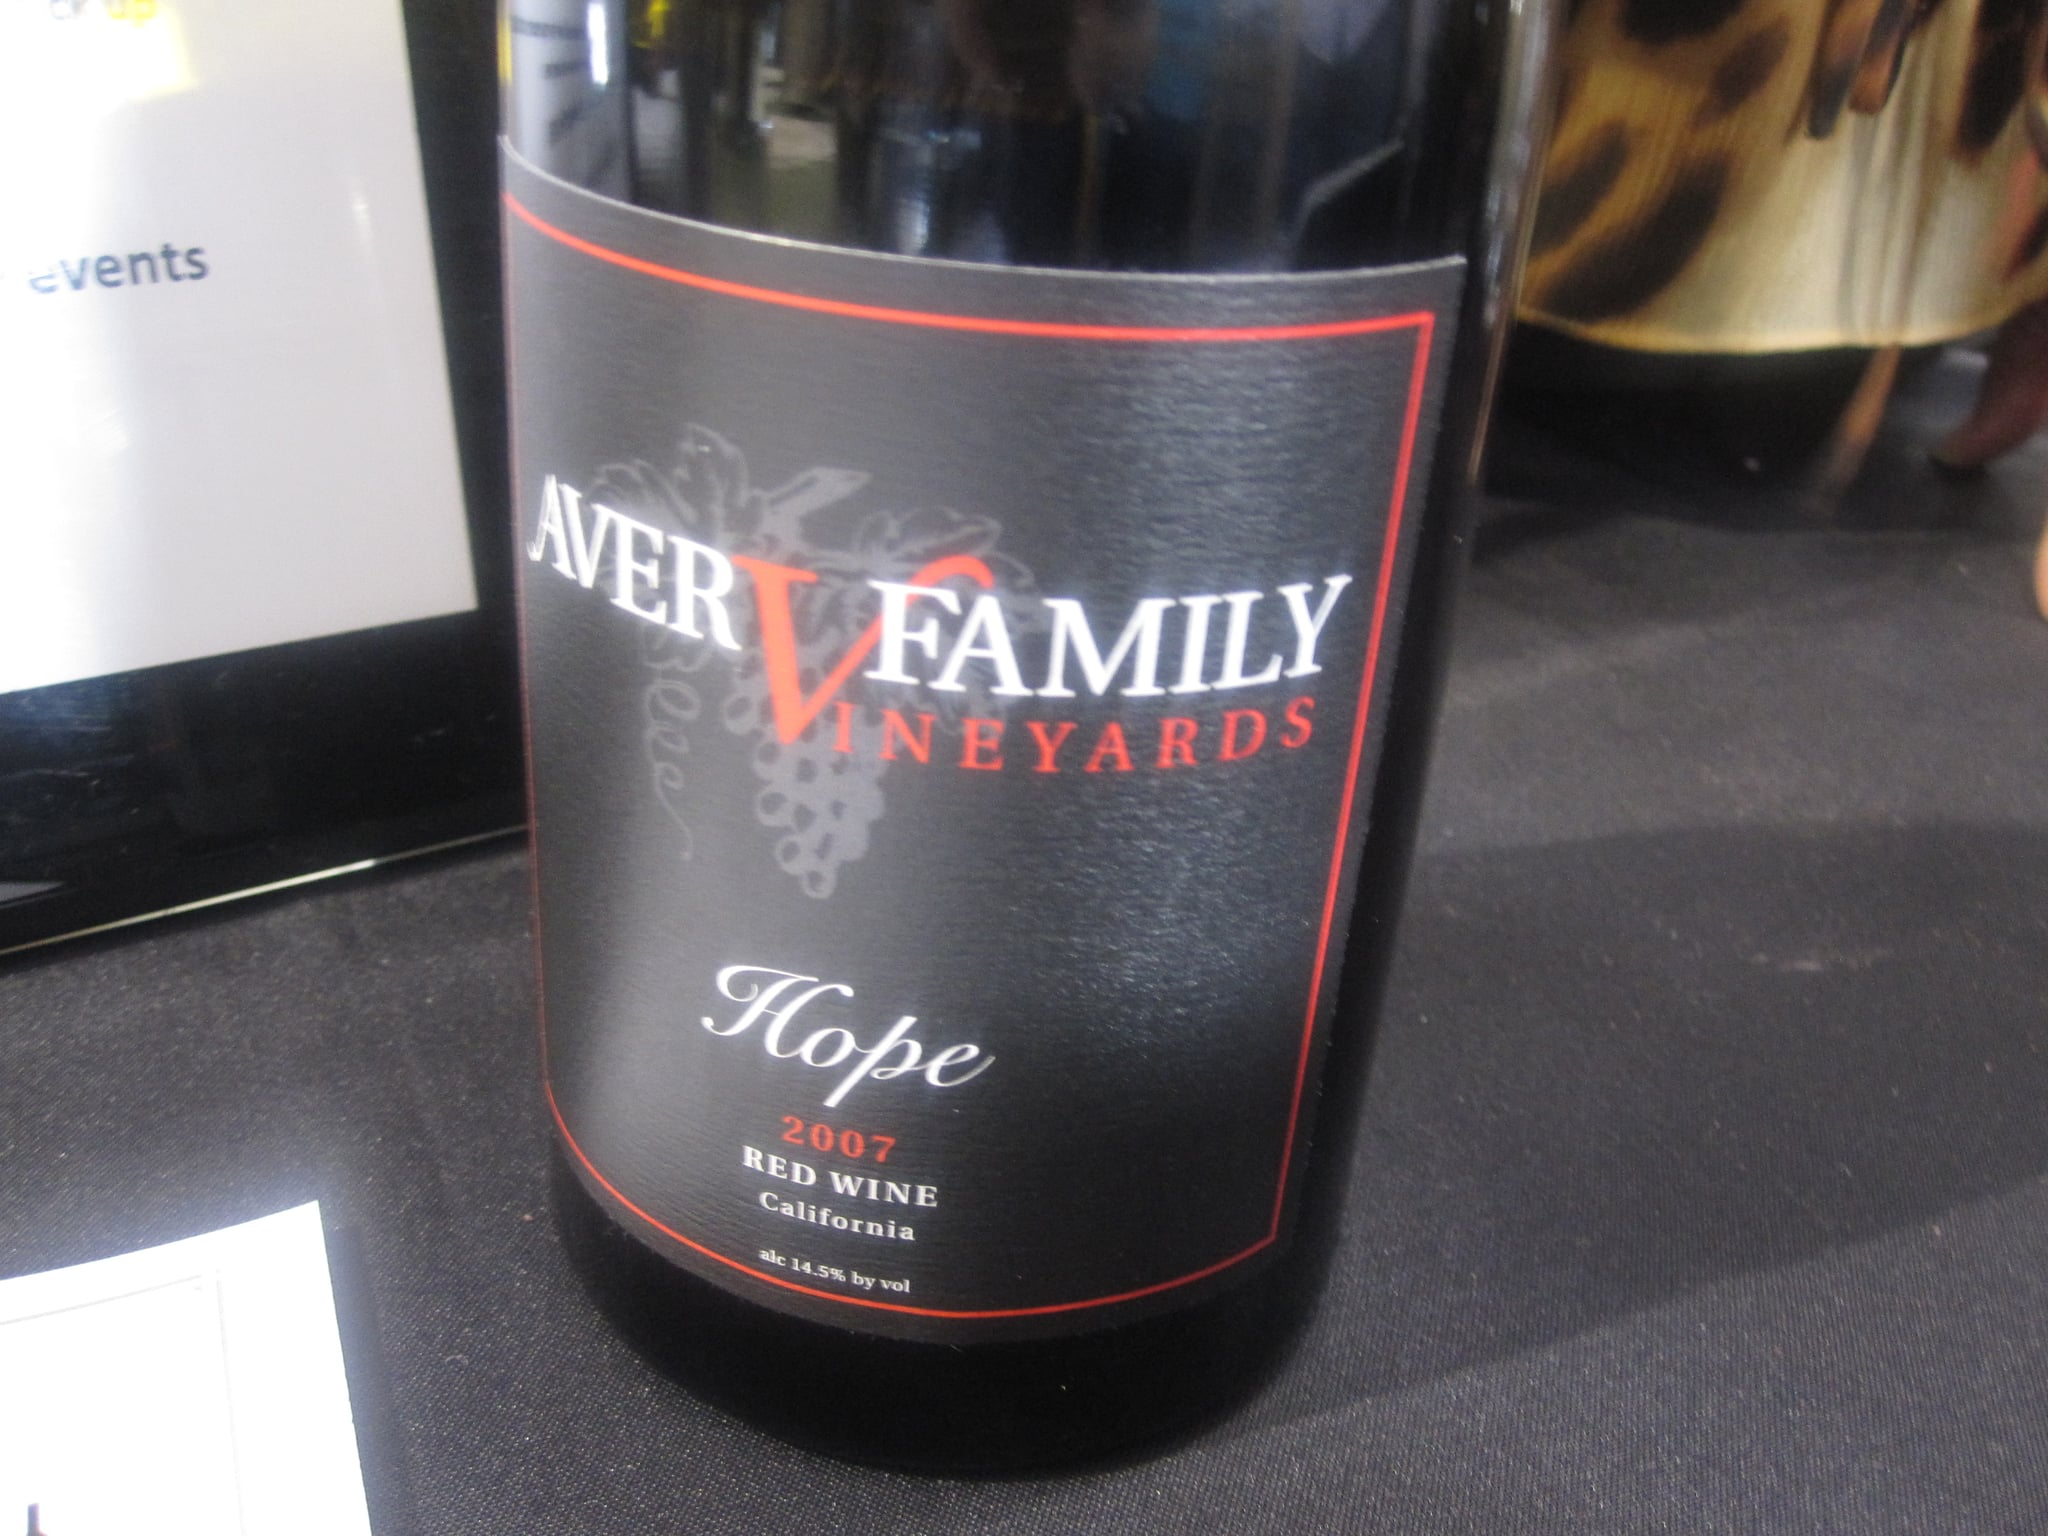 It was a cold rainy Saturday so I had my fair share of bold reds, including this one called Hope.